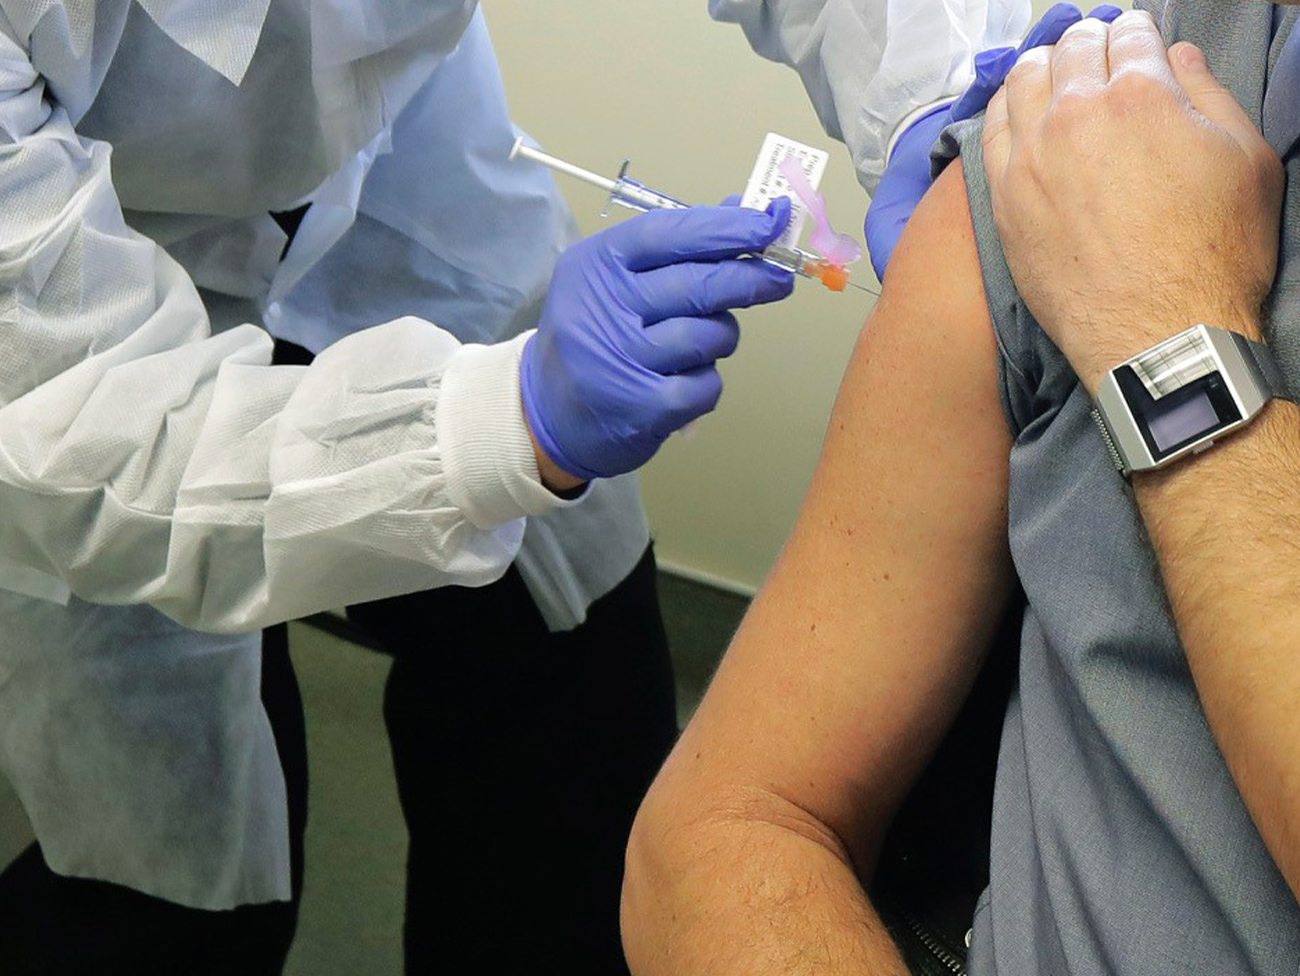 man receiving a vaccination shot